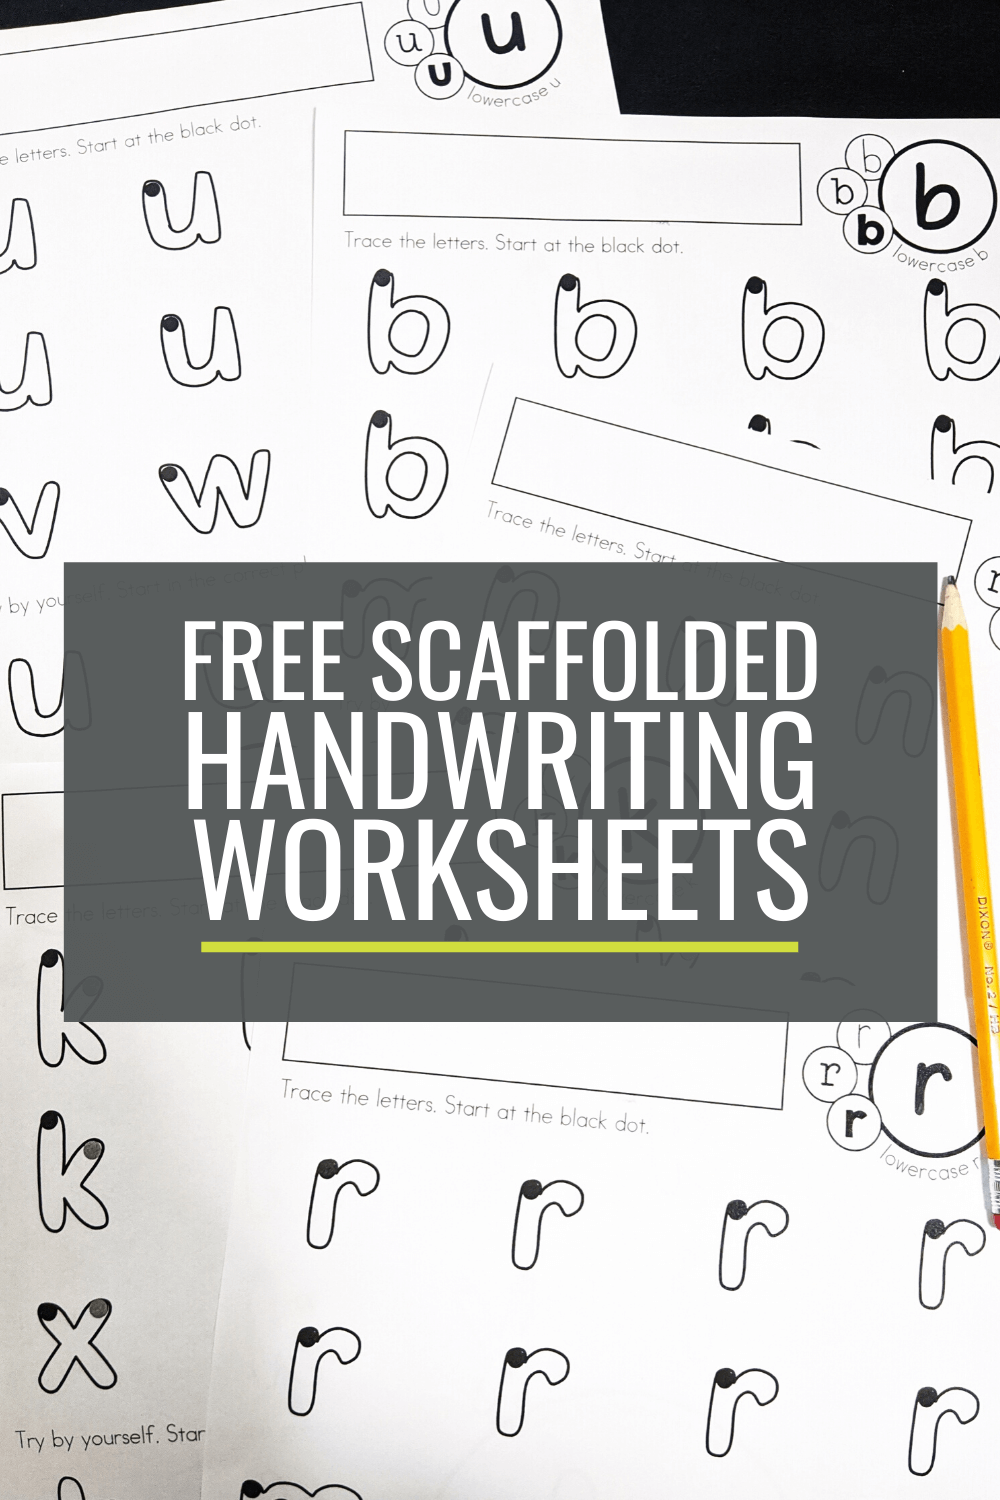 Free Scaffolded Handwriting Worksheets for Kindergarten: Lowercase a-z